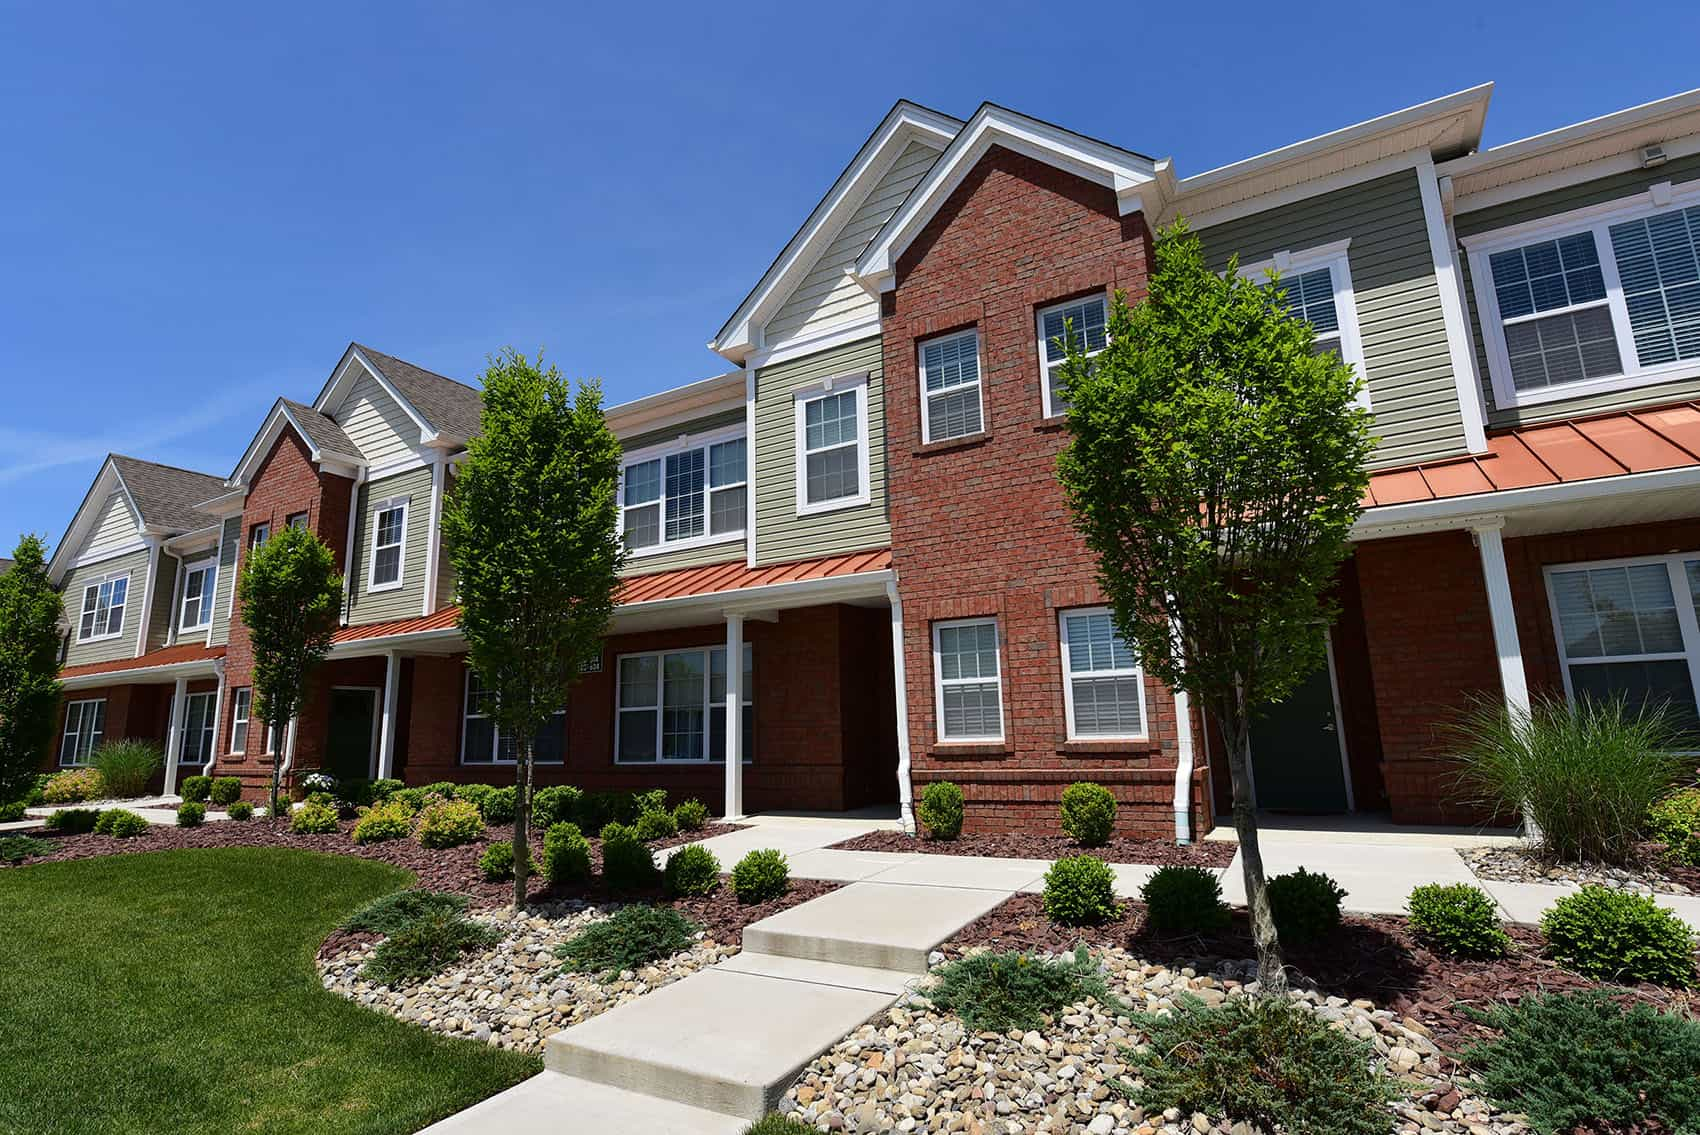 Exterior view of the Gardens at Jackson Twenty-One with beautiful landscaping and private entrances